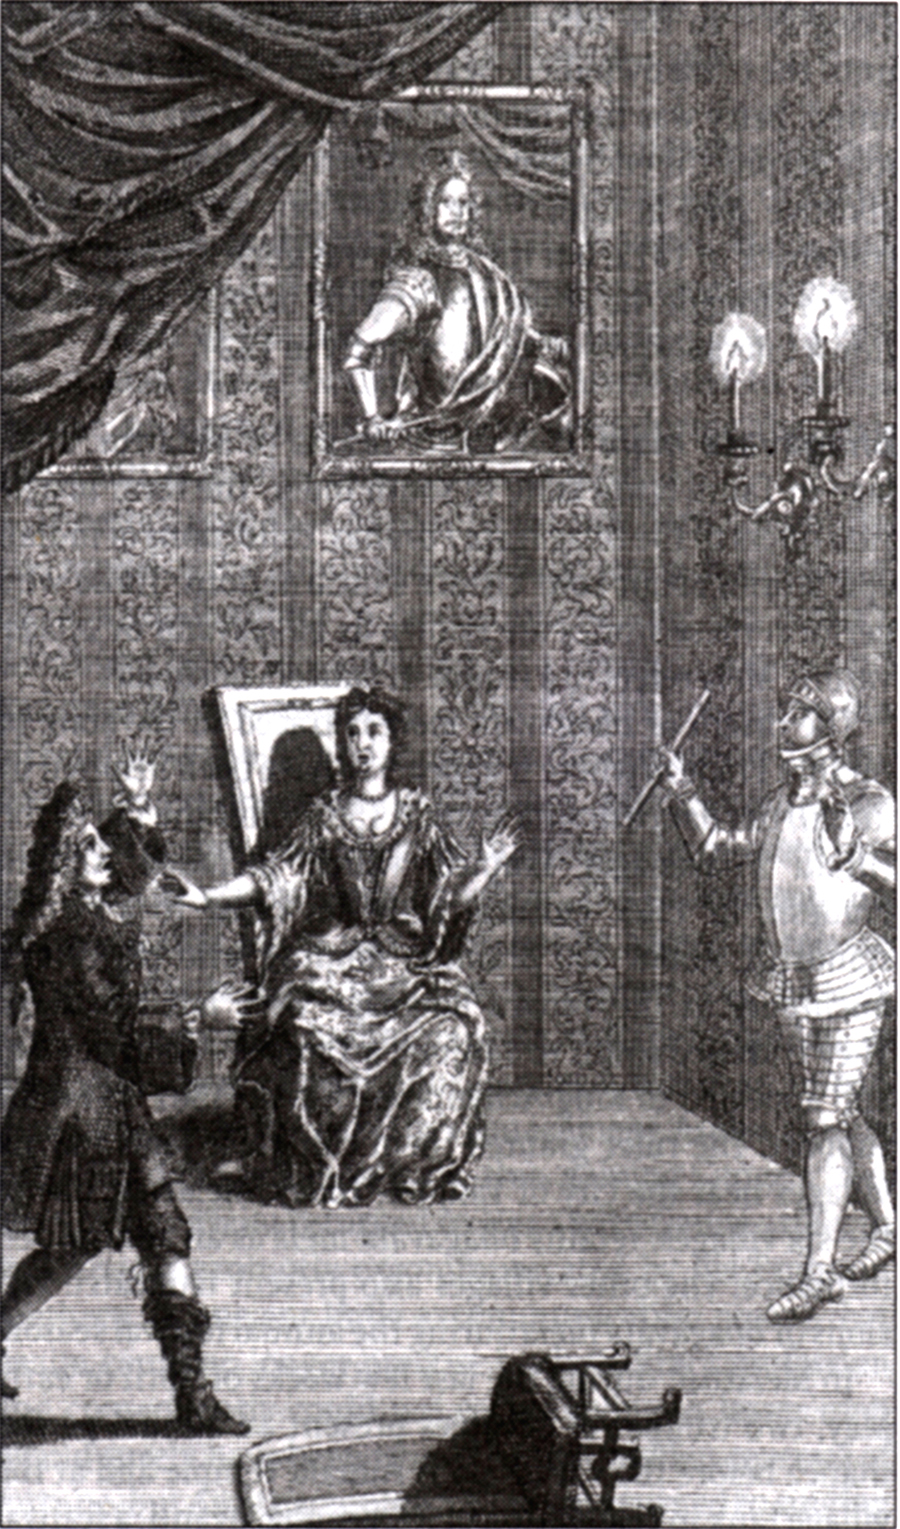 the internal struggle of claudius in hamlet a play by william shakespeare An inherent tension between confrontation and resolution is revealed through characterisation in shakespeare's hamlet in your response make detailed reference to the play as a whole william shakespeare's hamlet , 1603, is a revenge tragedy that demonstrates an inherent tension.